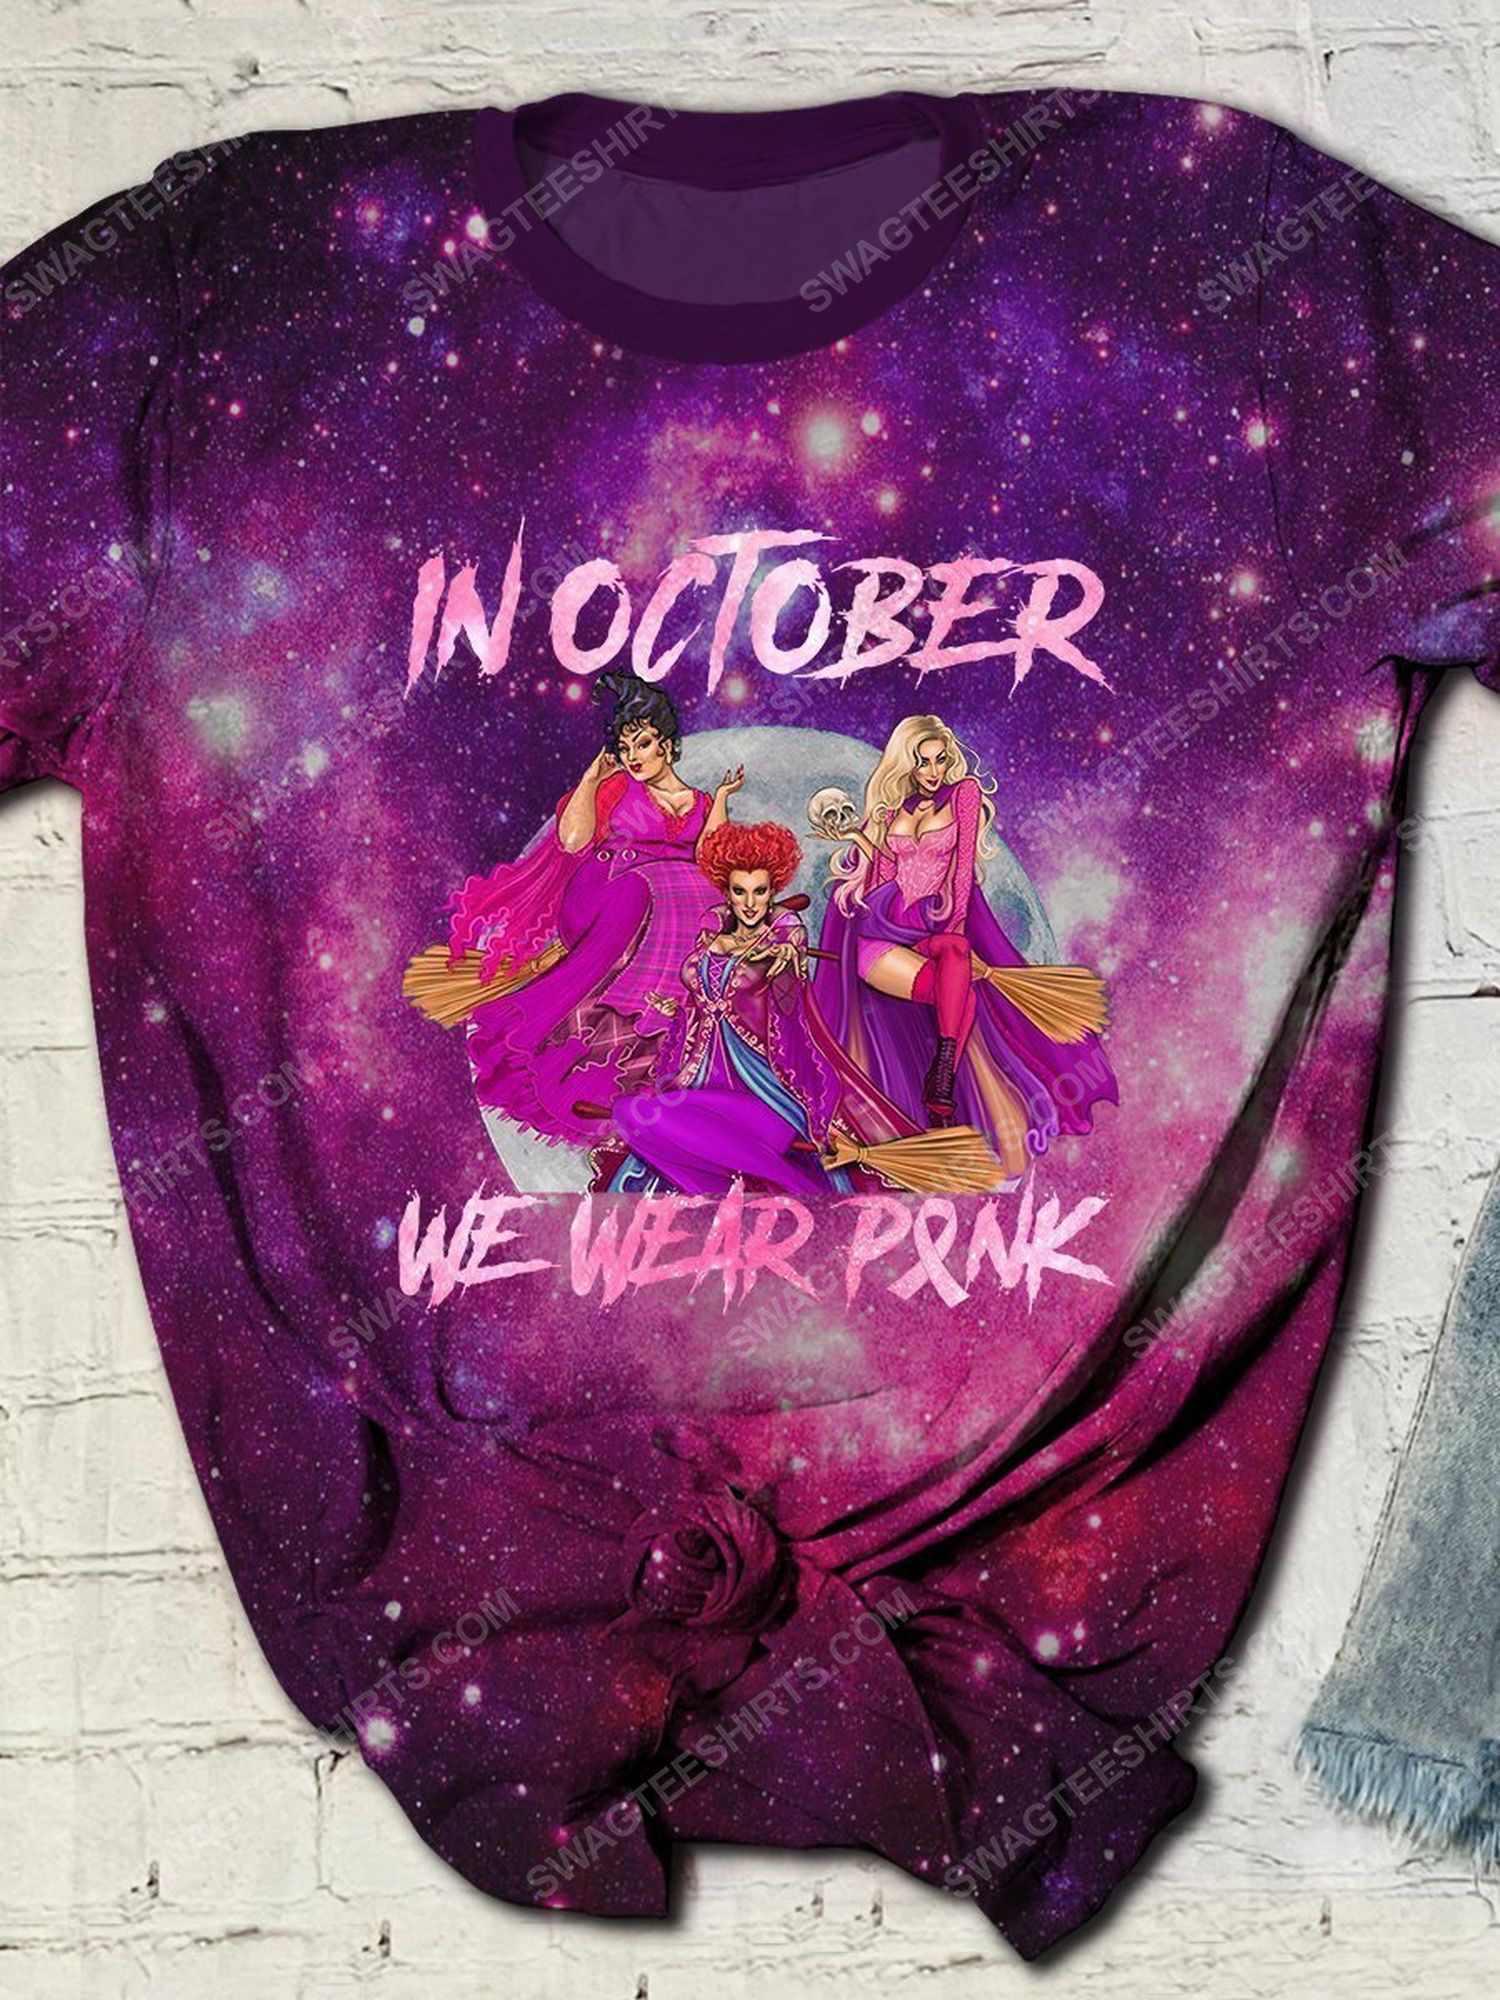 Breast cancer in october we wear pink hocus pocus galaxy full print shirt